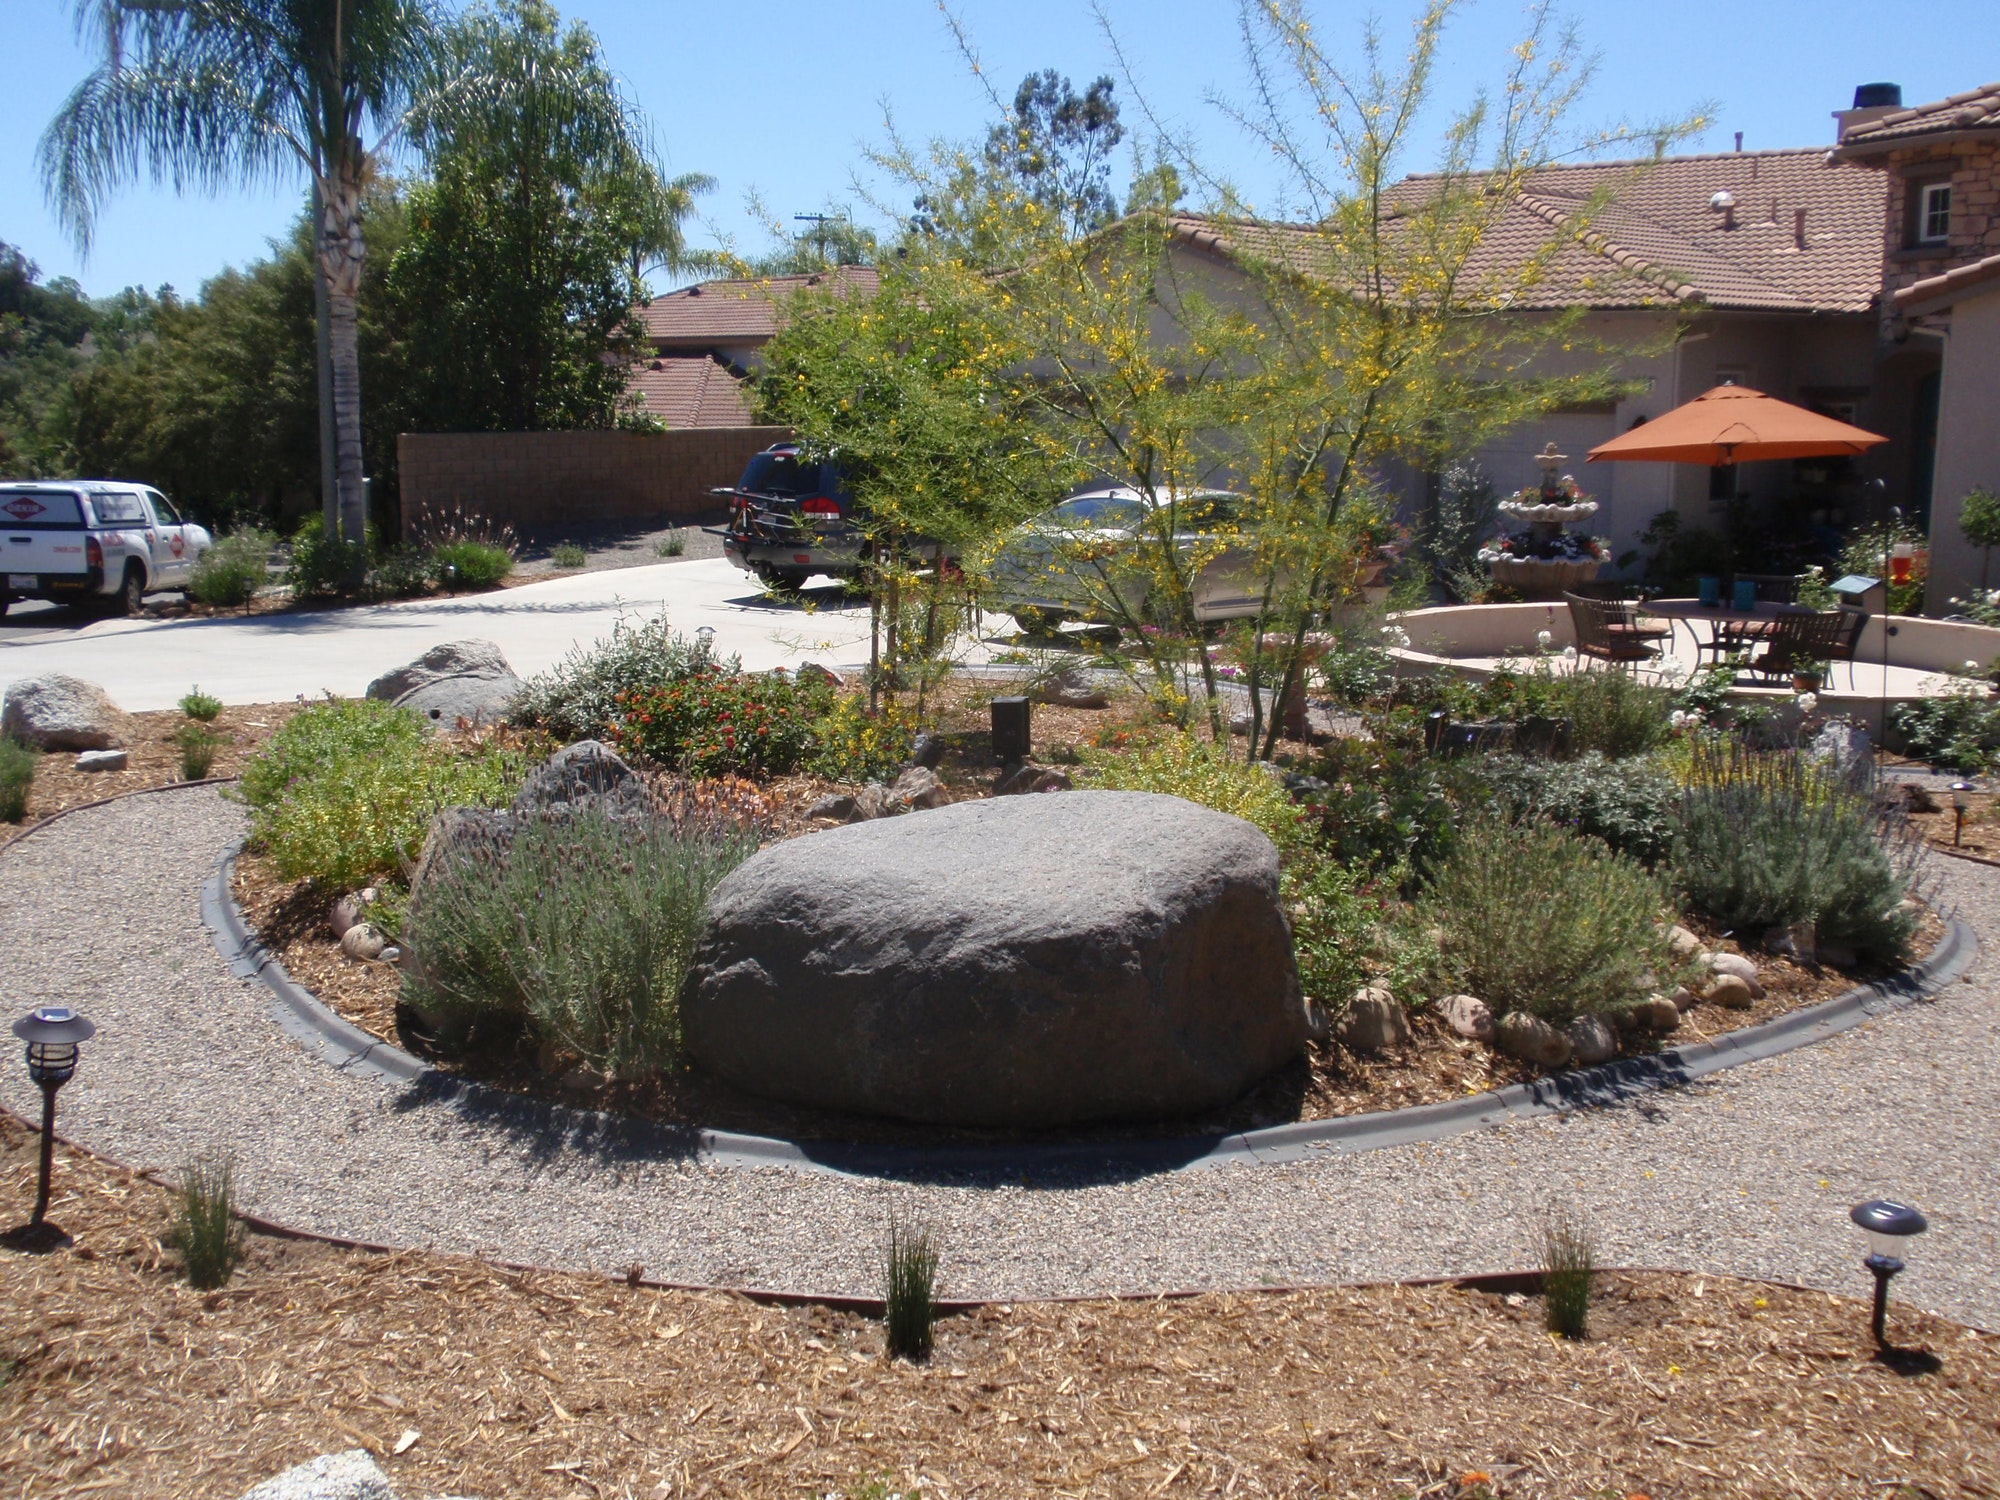 Photograph of WaterSmart landscaping at a residential home, that includes Palo Verde tree, landscaping boulders and gravel pathway.